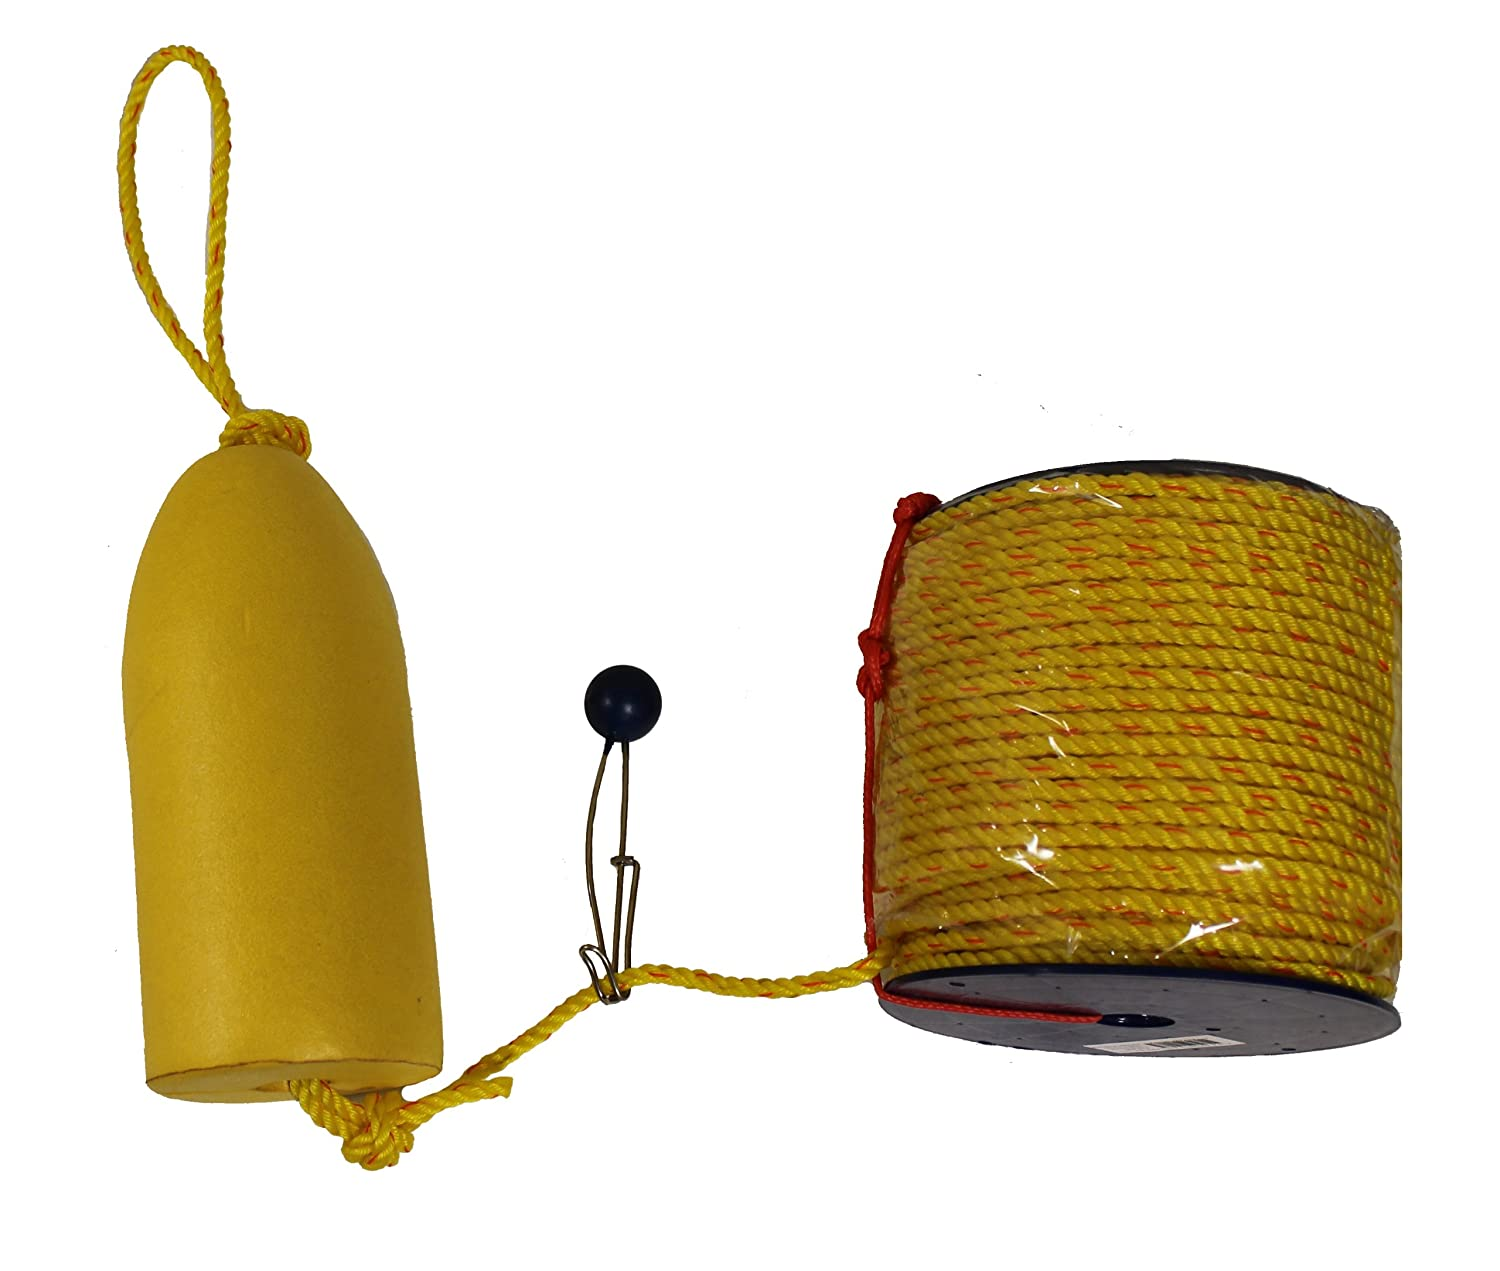 KUFA Sports FYP-400 Float Combo with Shrimp Trap Float and Polyester Rope Coil, 5 x 11-Inch